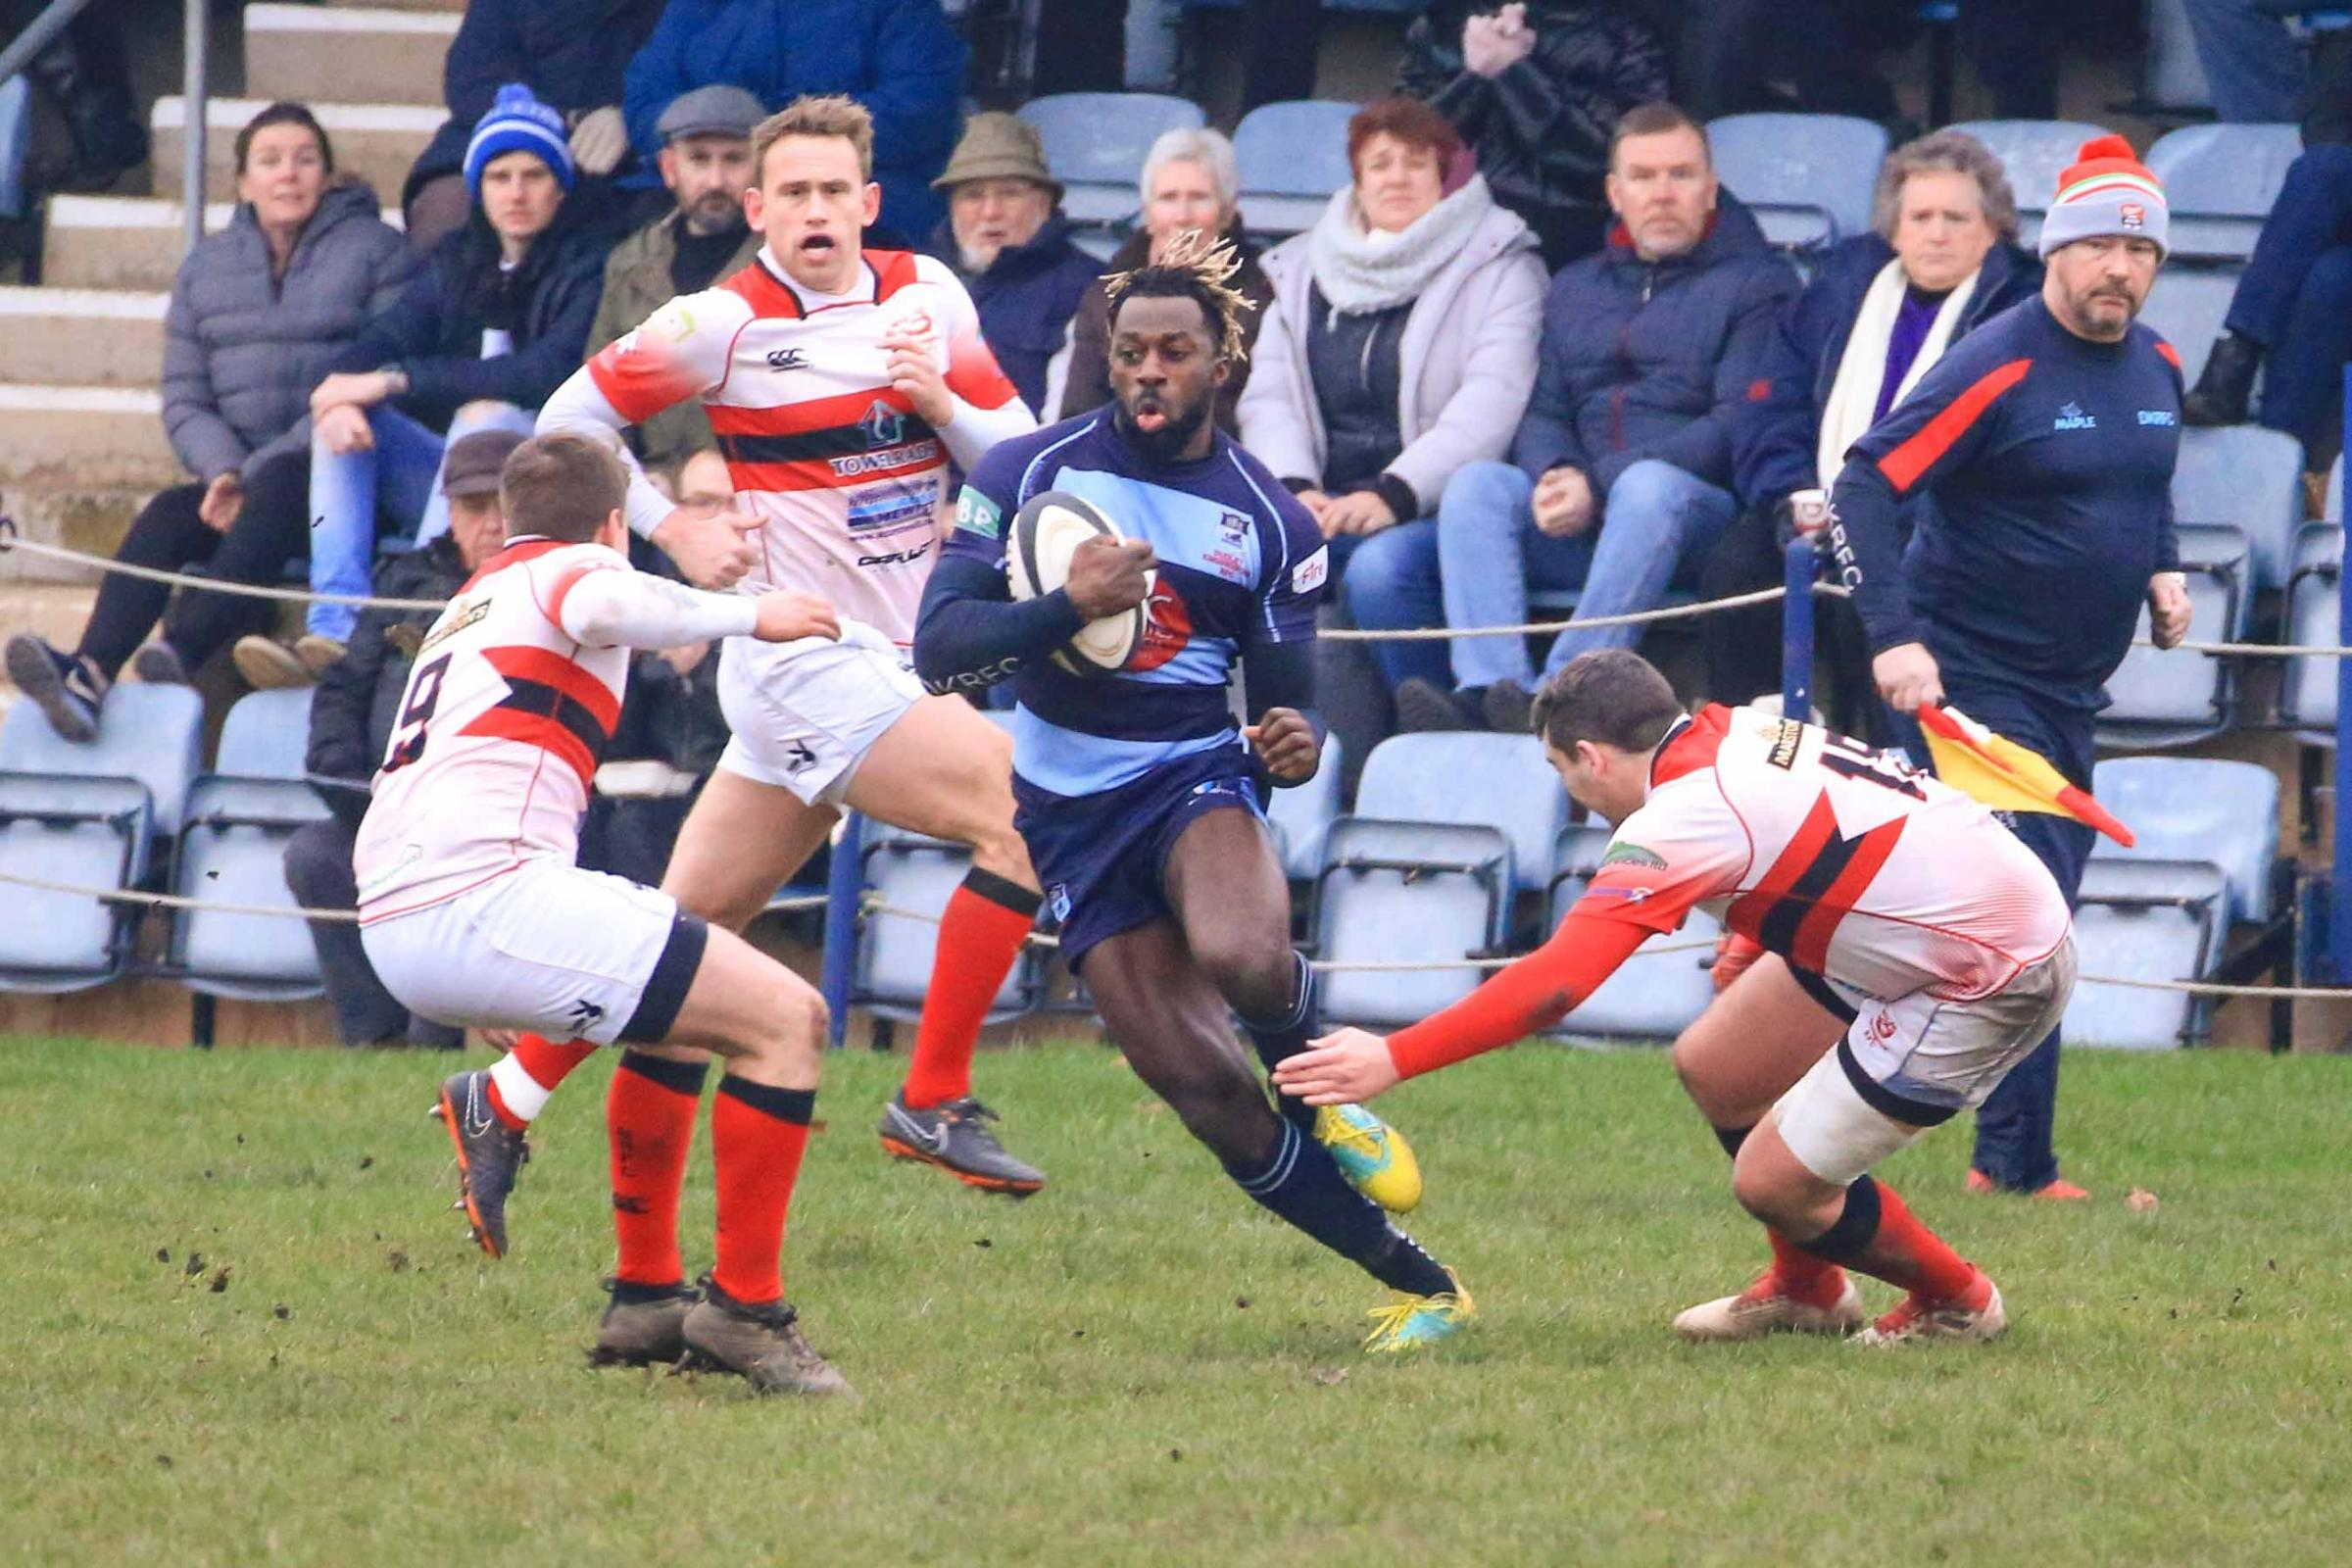 Charles Buffour cuts in off his wing against Bromsgrove. Photo: Ian Jackson